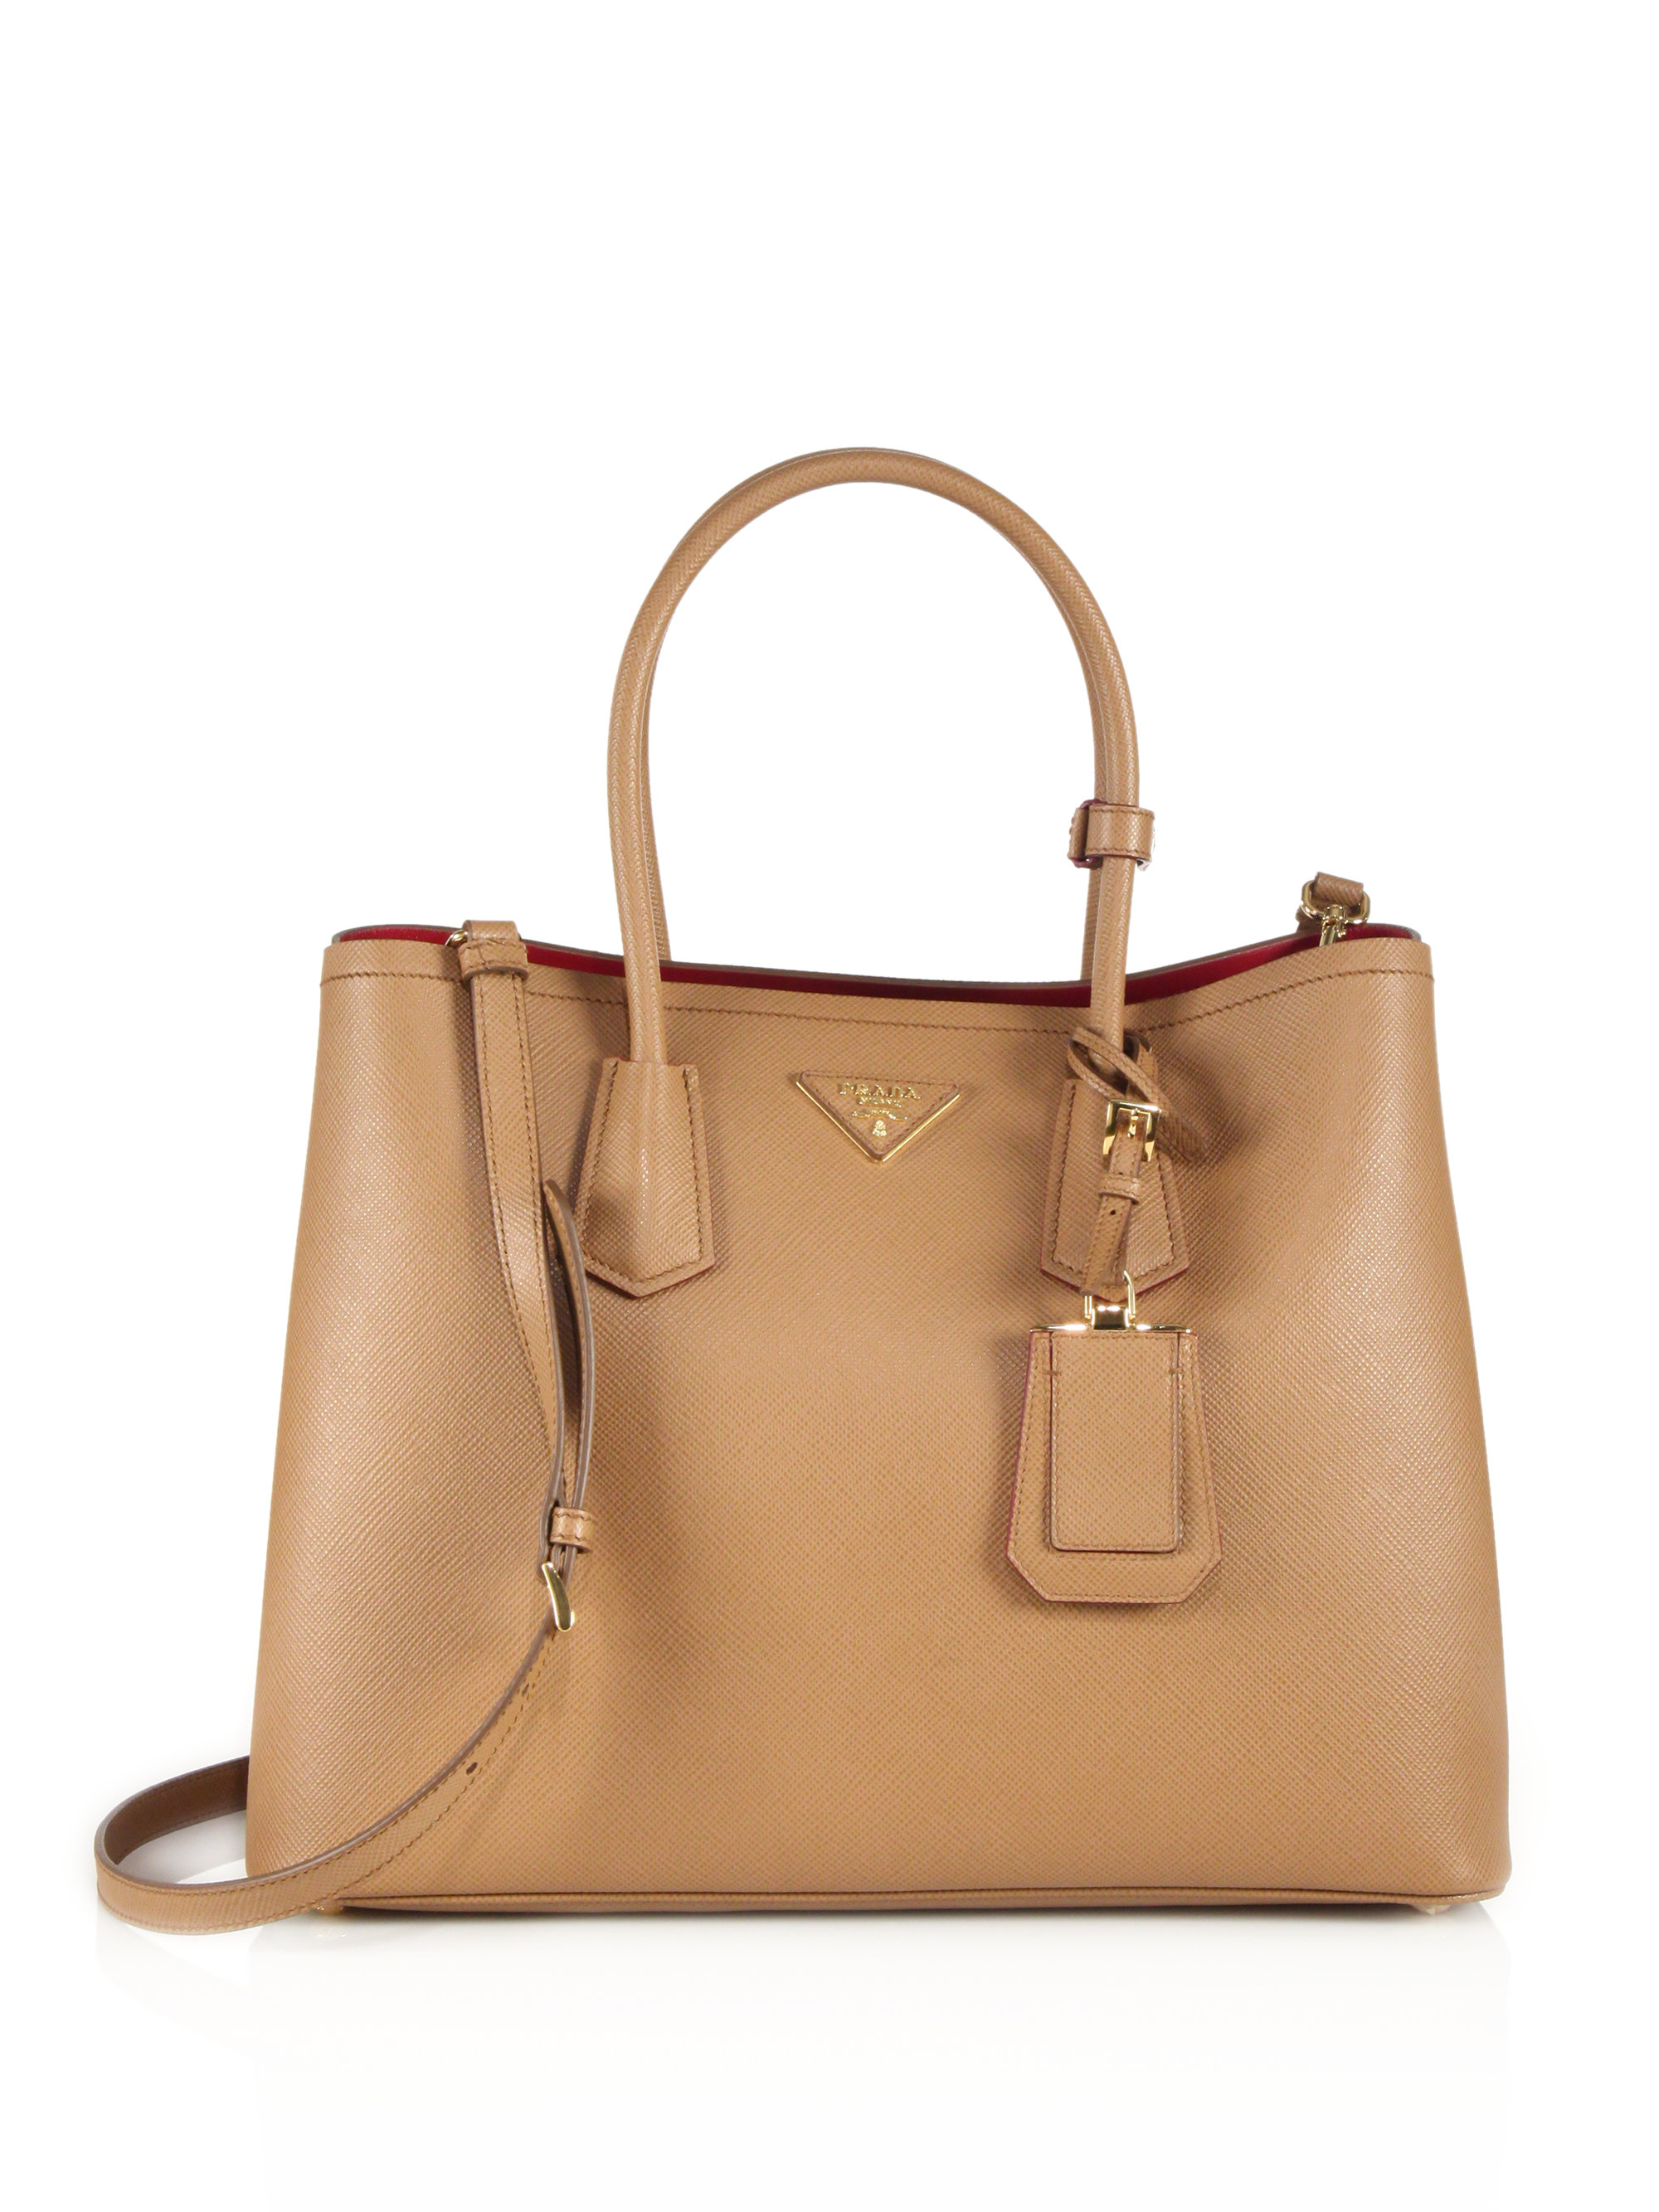 c755637444aaff Prada Saffiano Cuir Medium Double Bag in Brown (caramel fuoco) | Lyst prada  galleria bag caramel